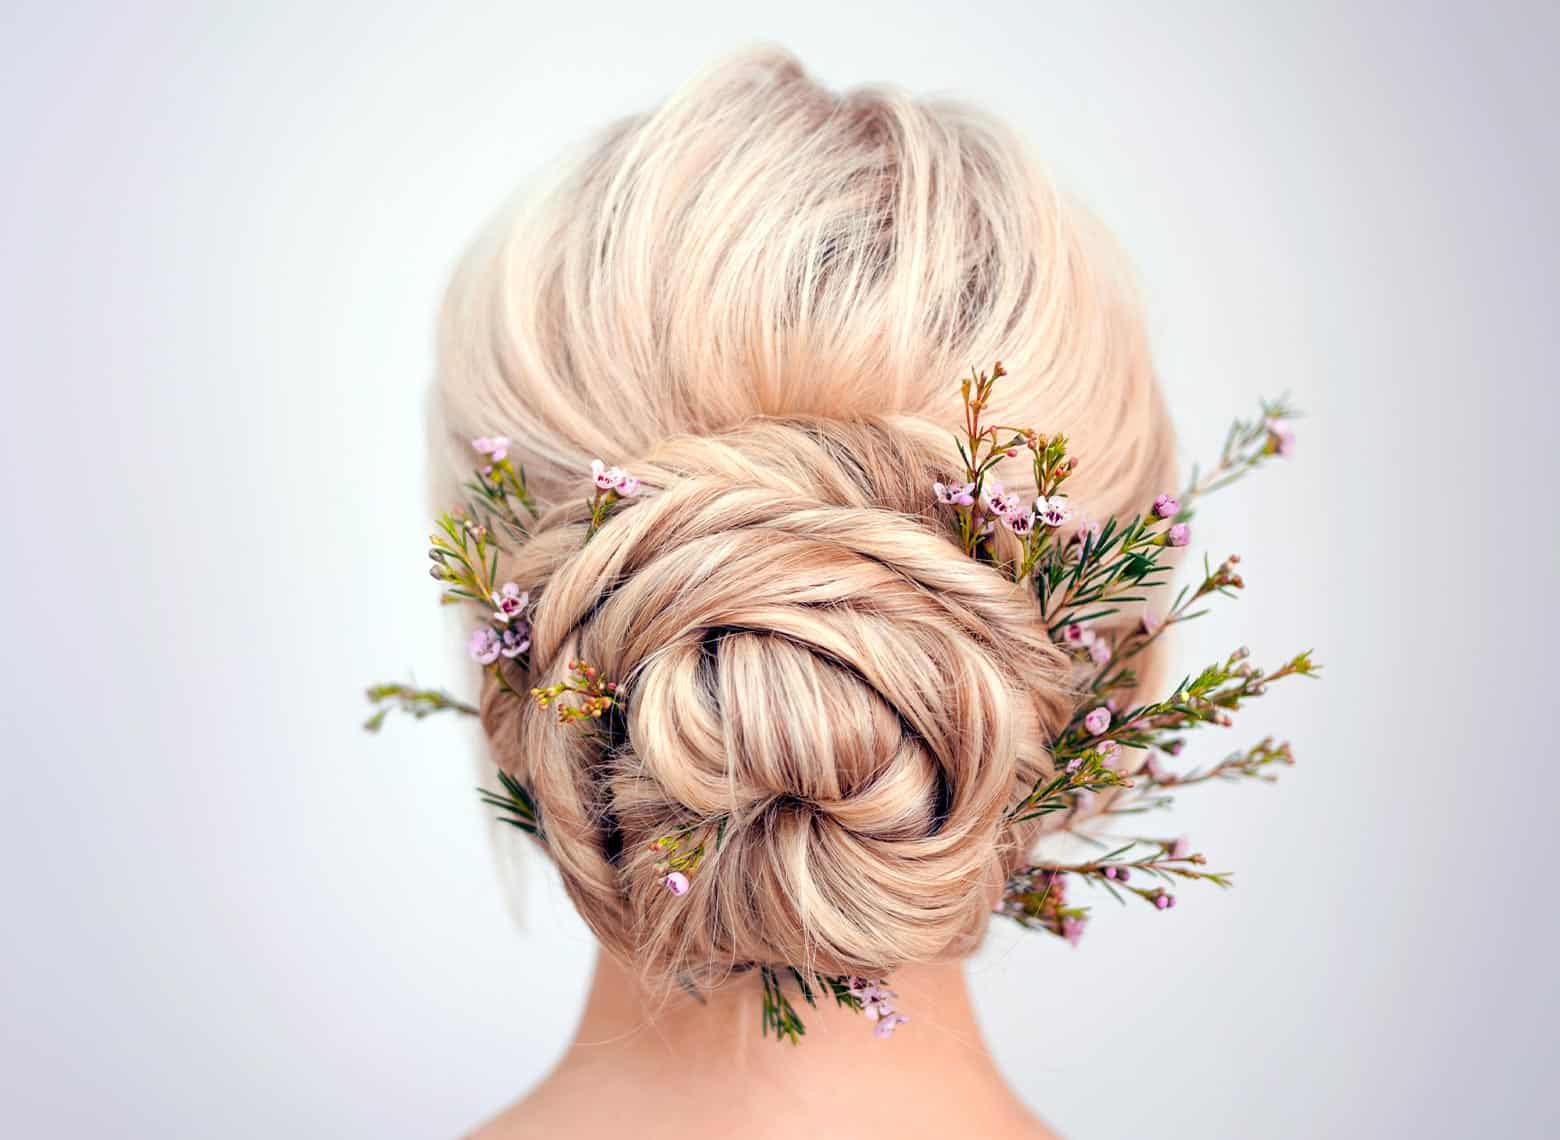 woman with twisted updo